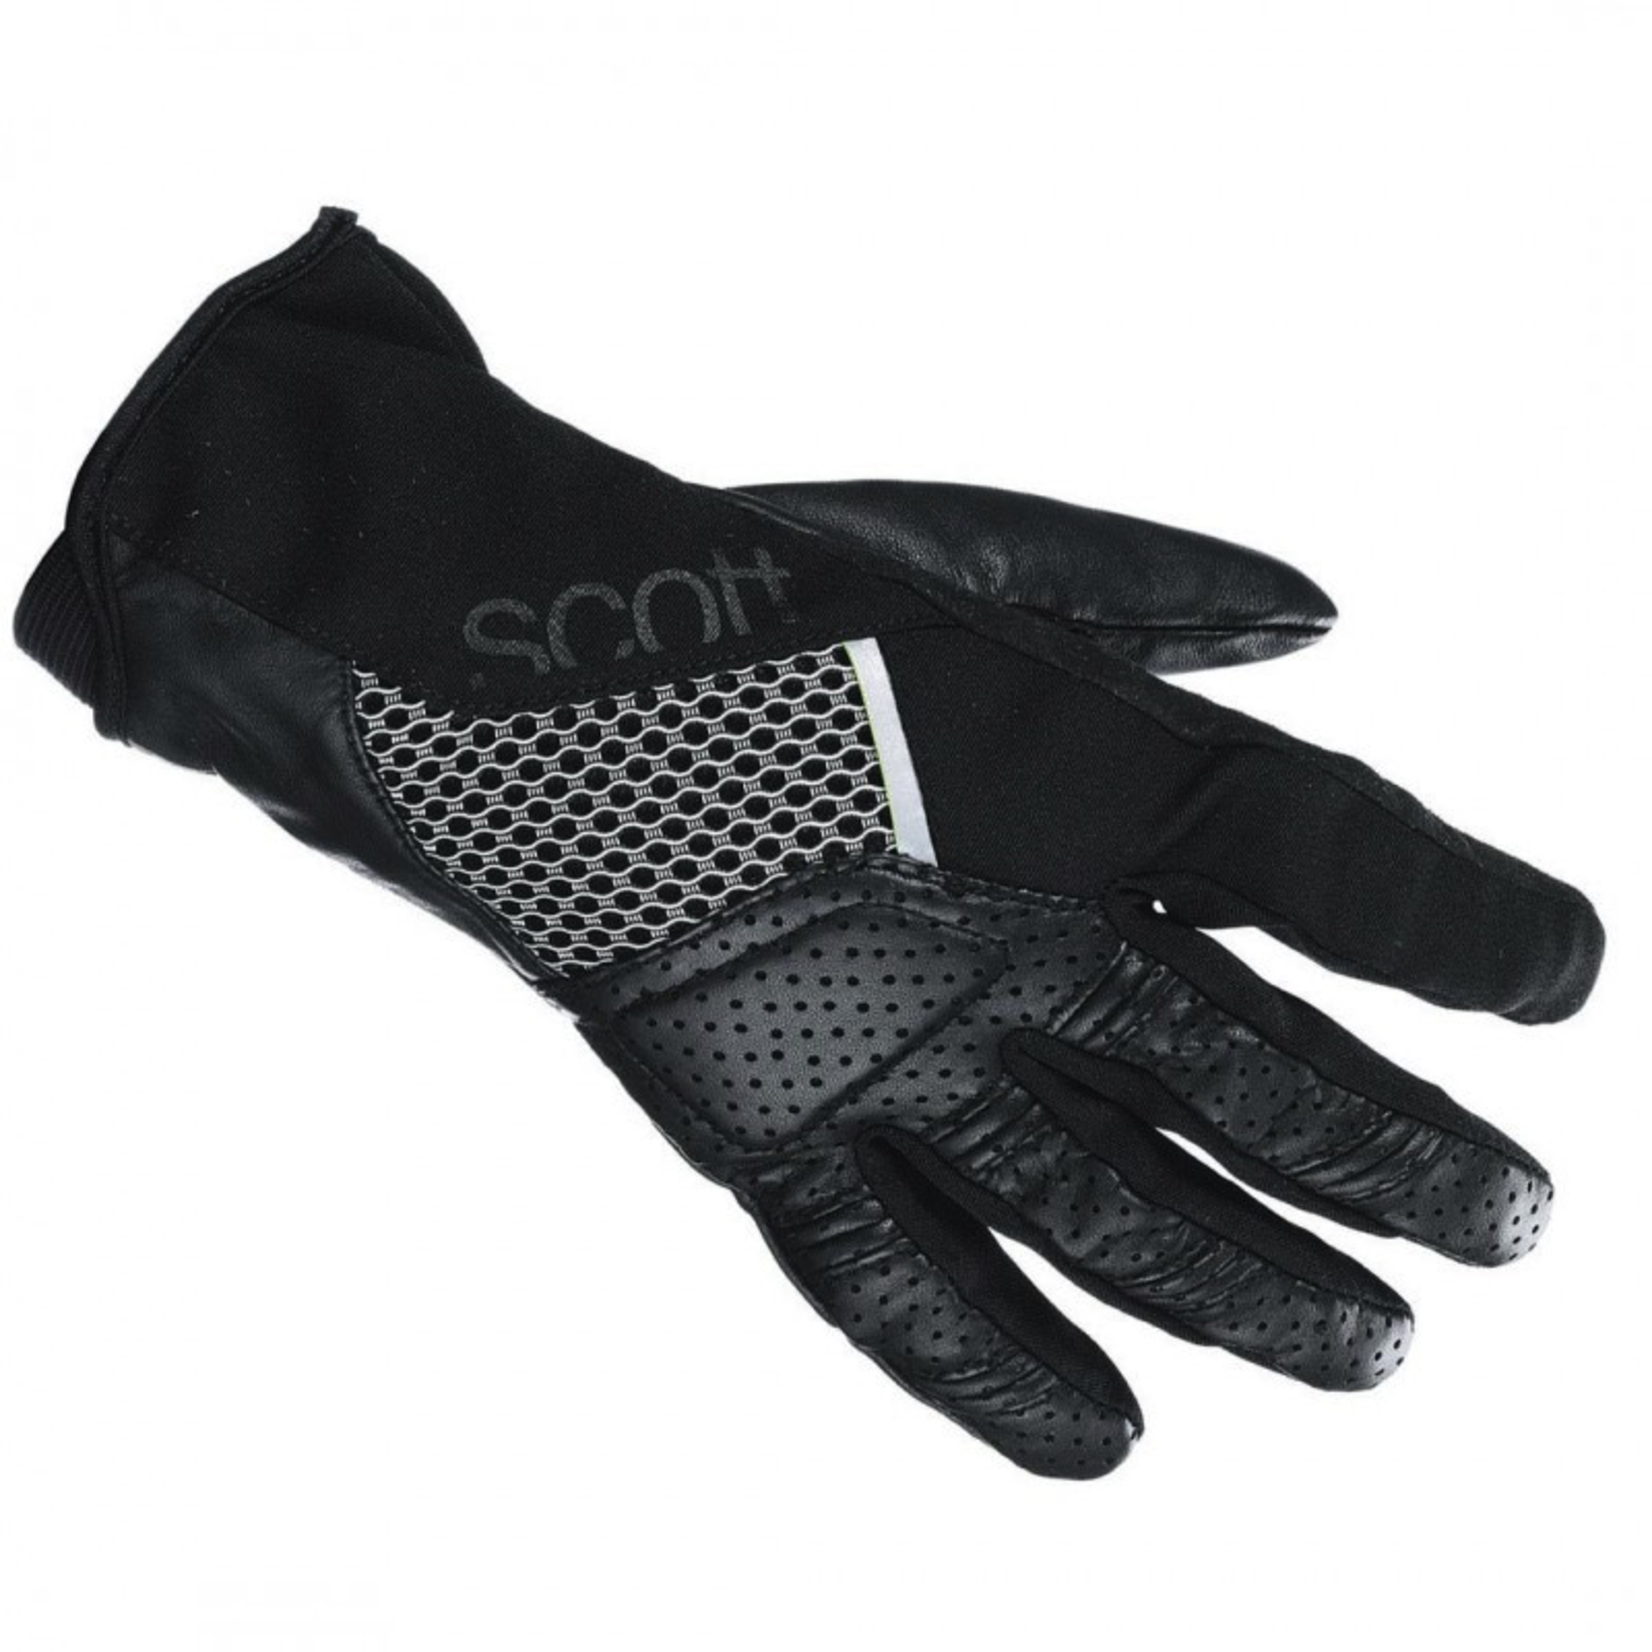 Apparel Glove SCOTT Women's Summer Mesh